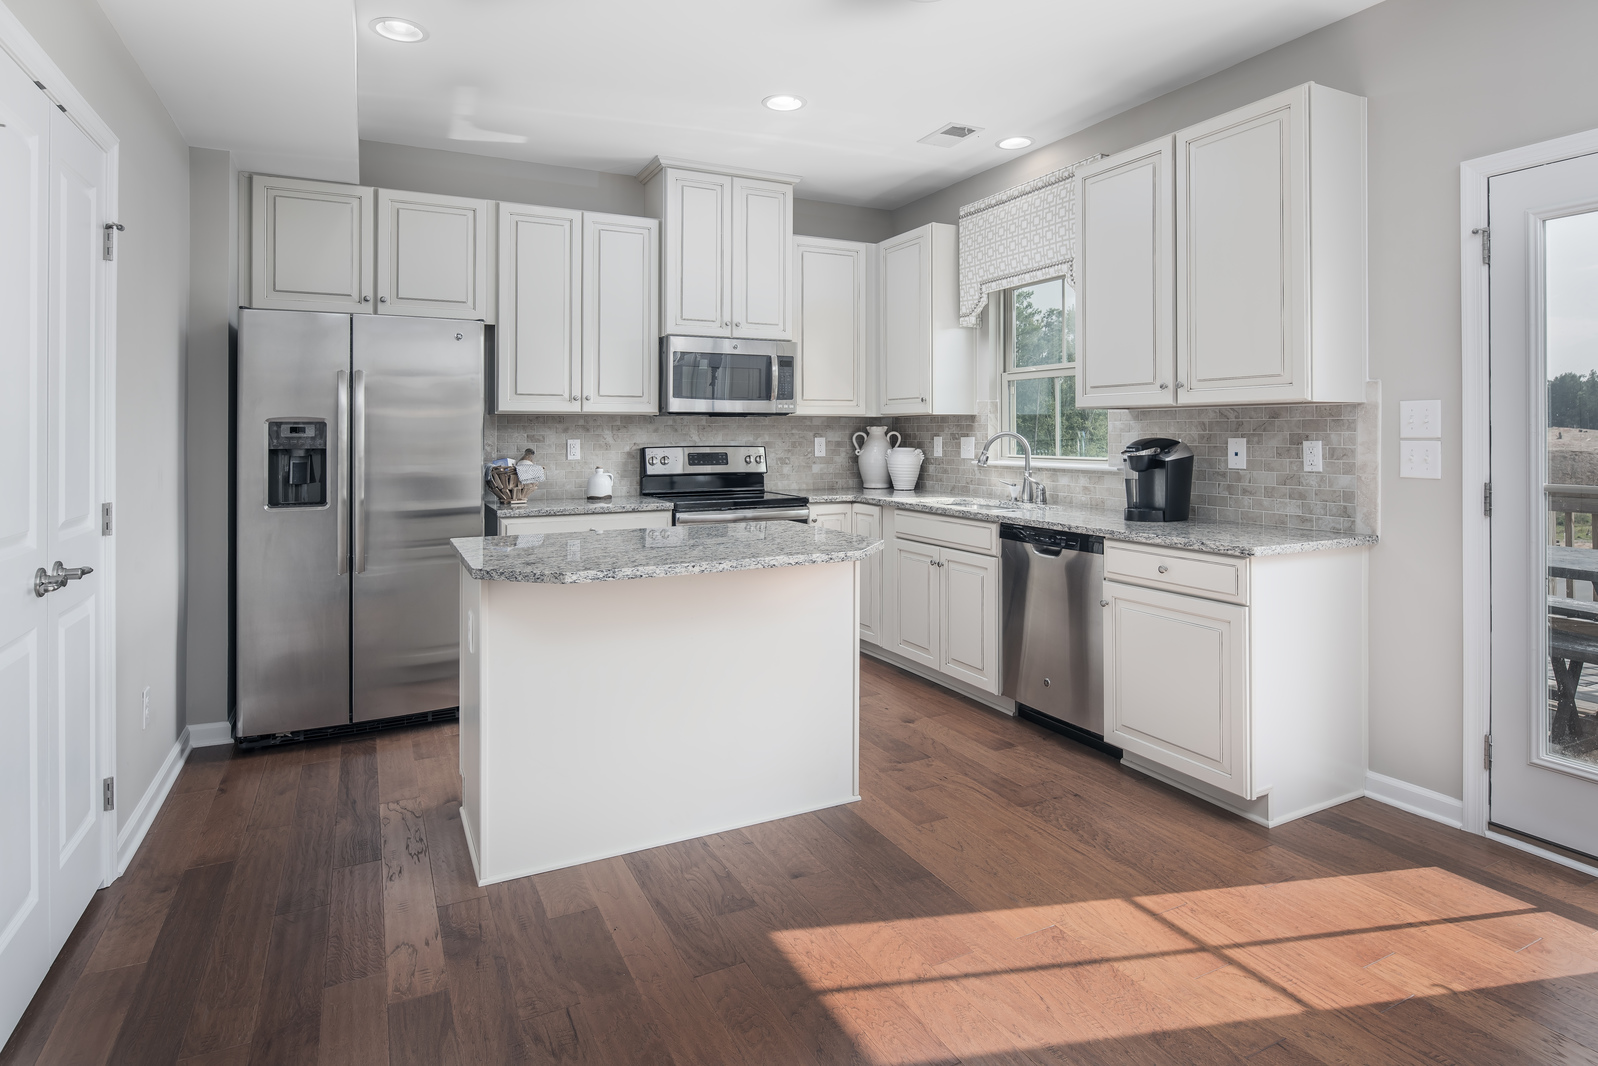 New Homes for sale at Twins At Montgomery View in Gilbertsville, PA ...